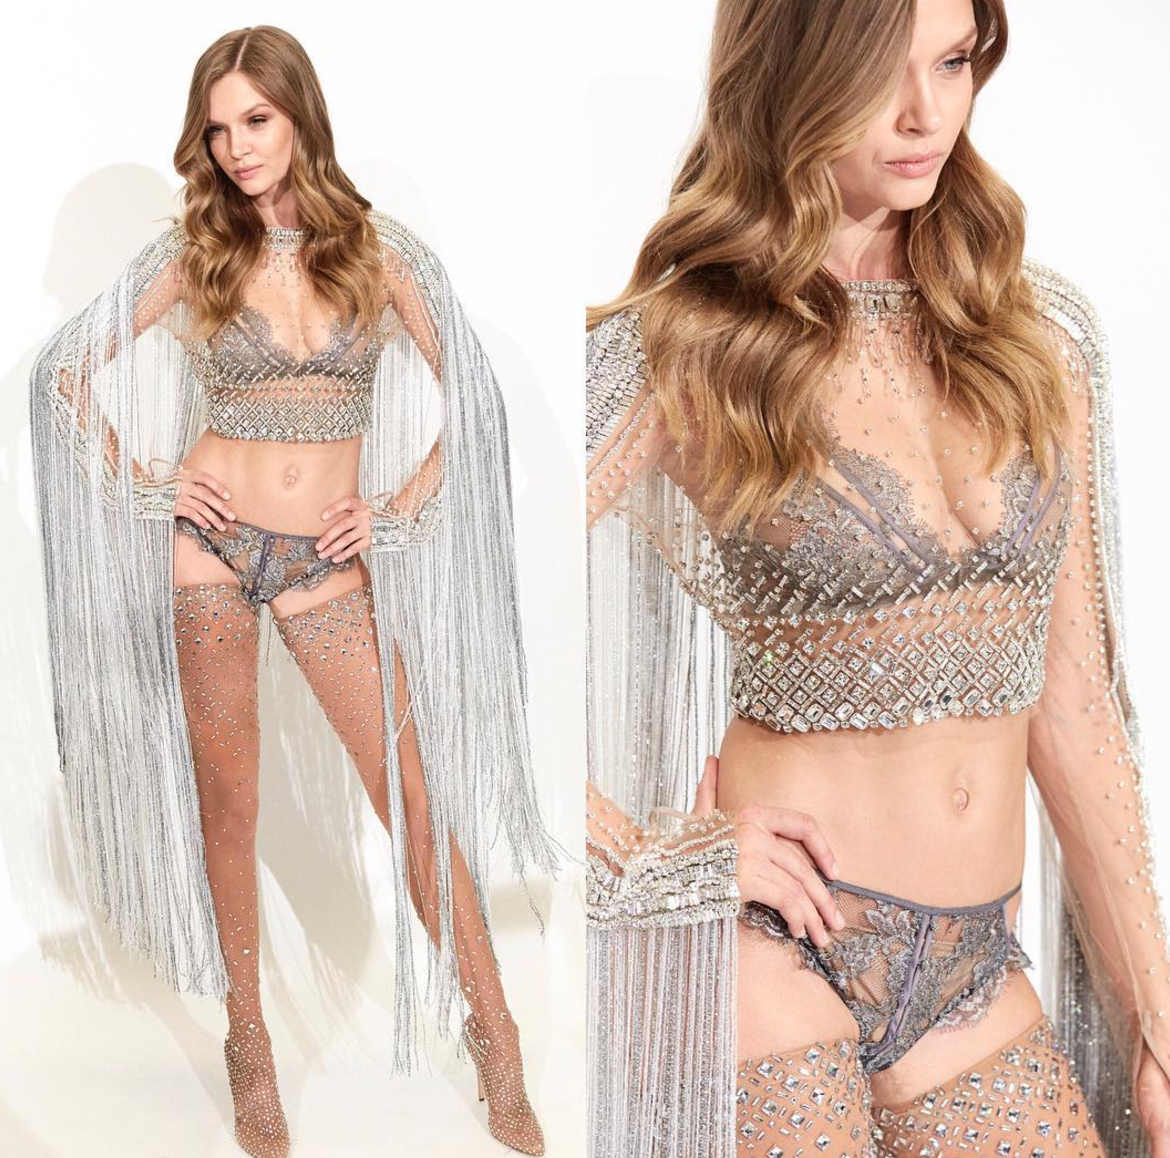 Here's what 20 pounds of crystal lingerie looks like on a Victoria's Secret model